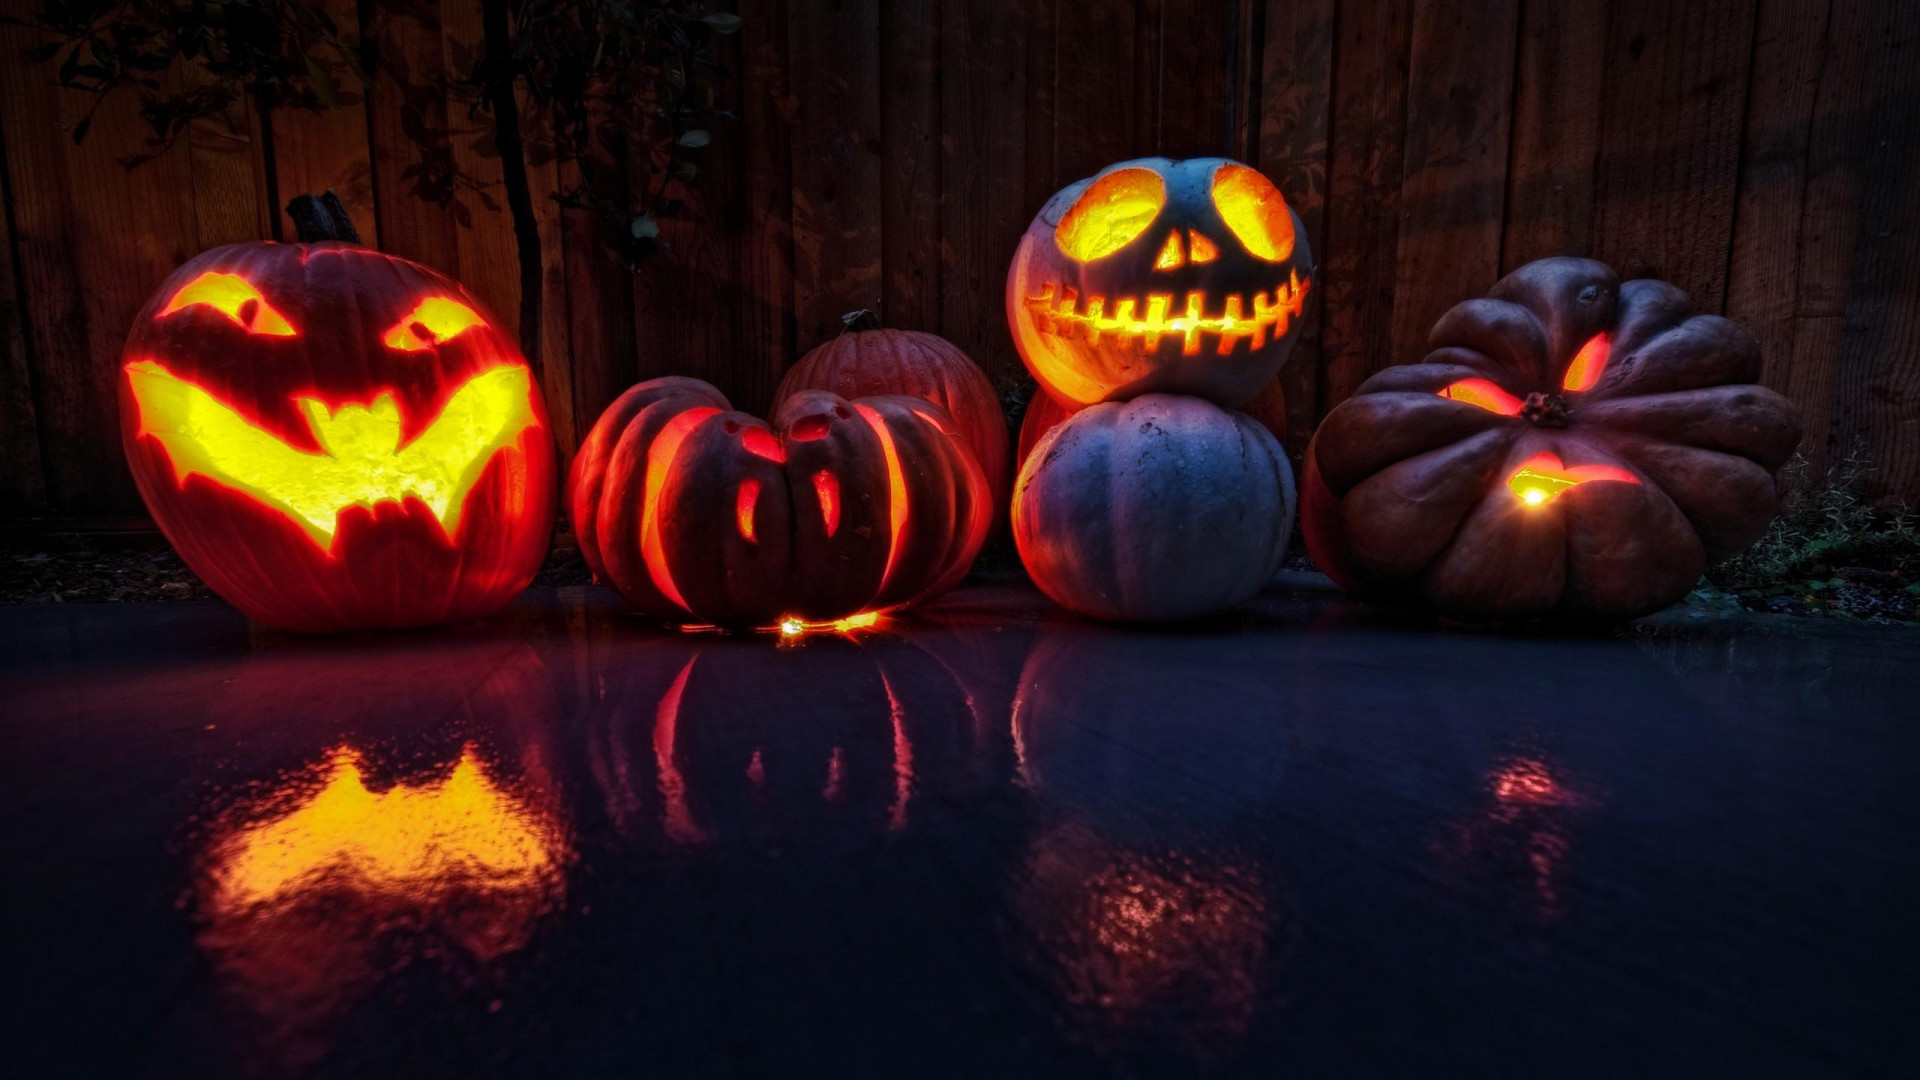 Hd Halloween Wallpapers 1080p 77 Images